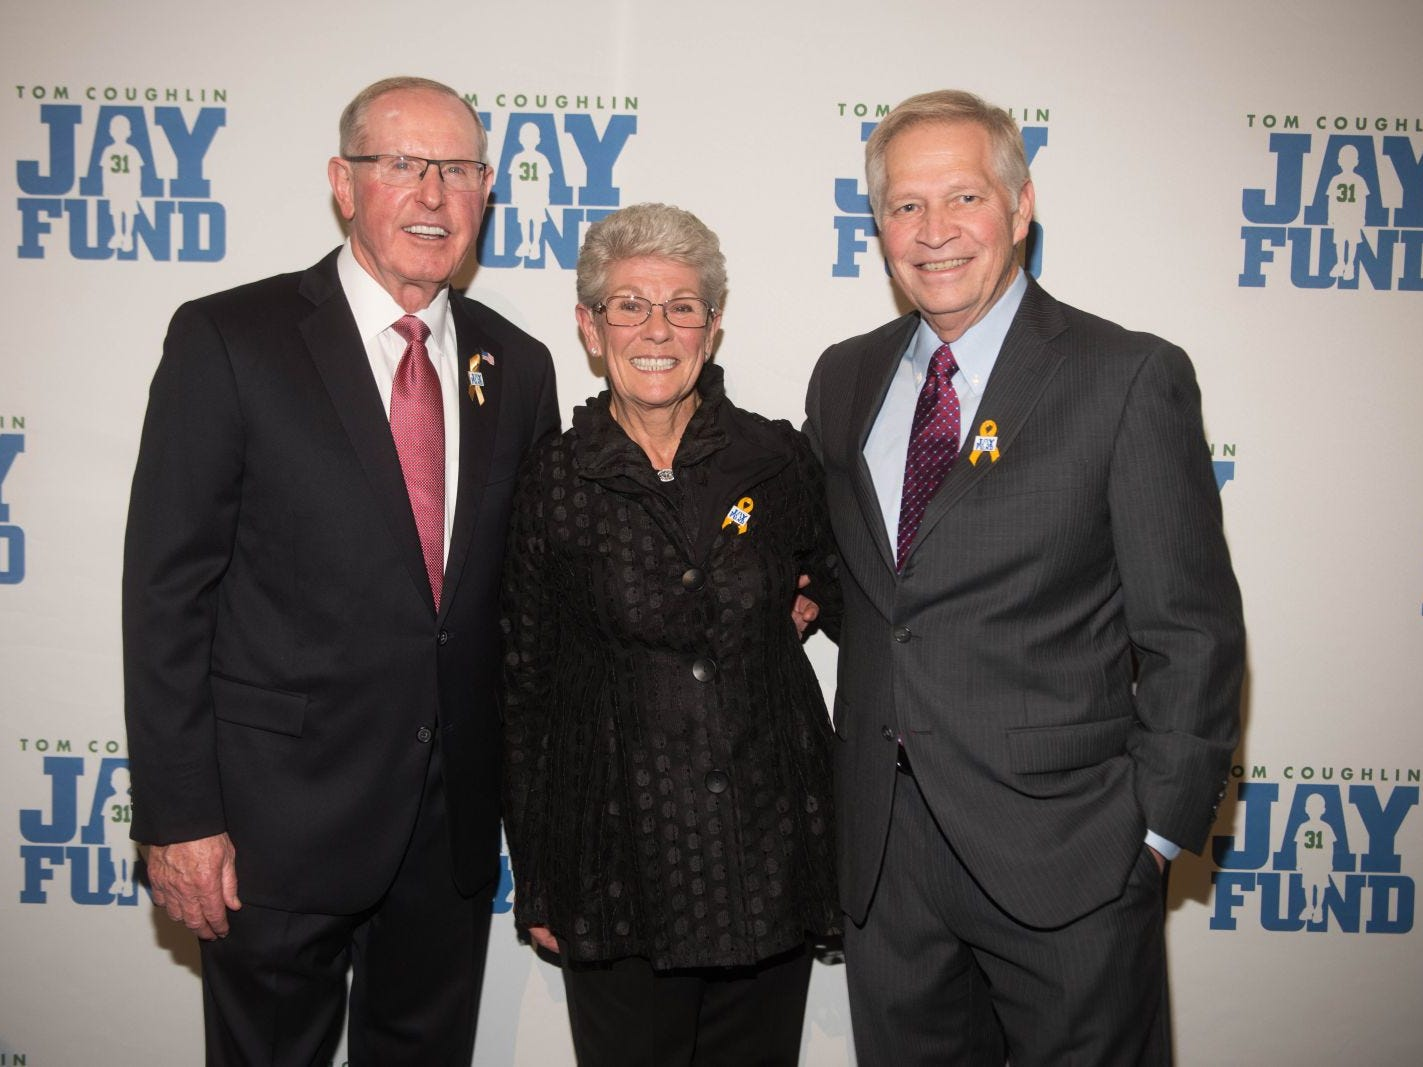 Tom Coughlin, Judy Coughlin and Chris Mortenson. The 14th annual Jay Fund Champions for Children Gala was held at Cipriani 42nd Street. 09/21/2018